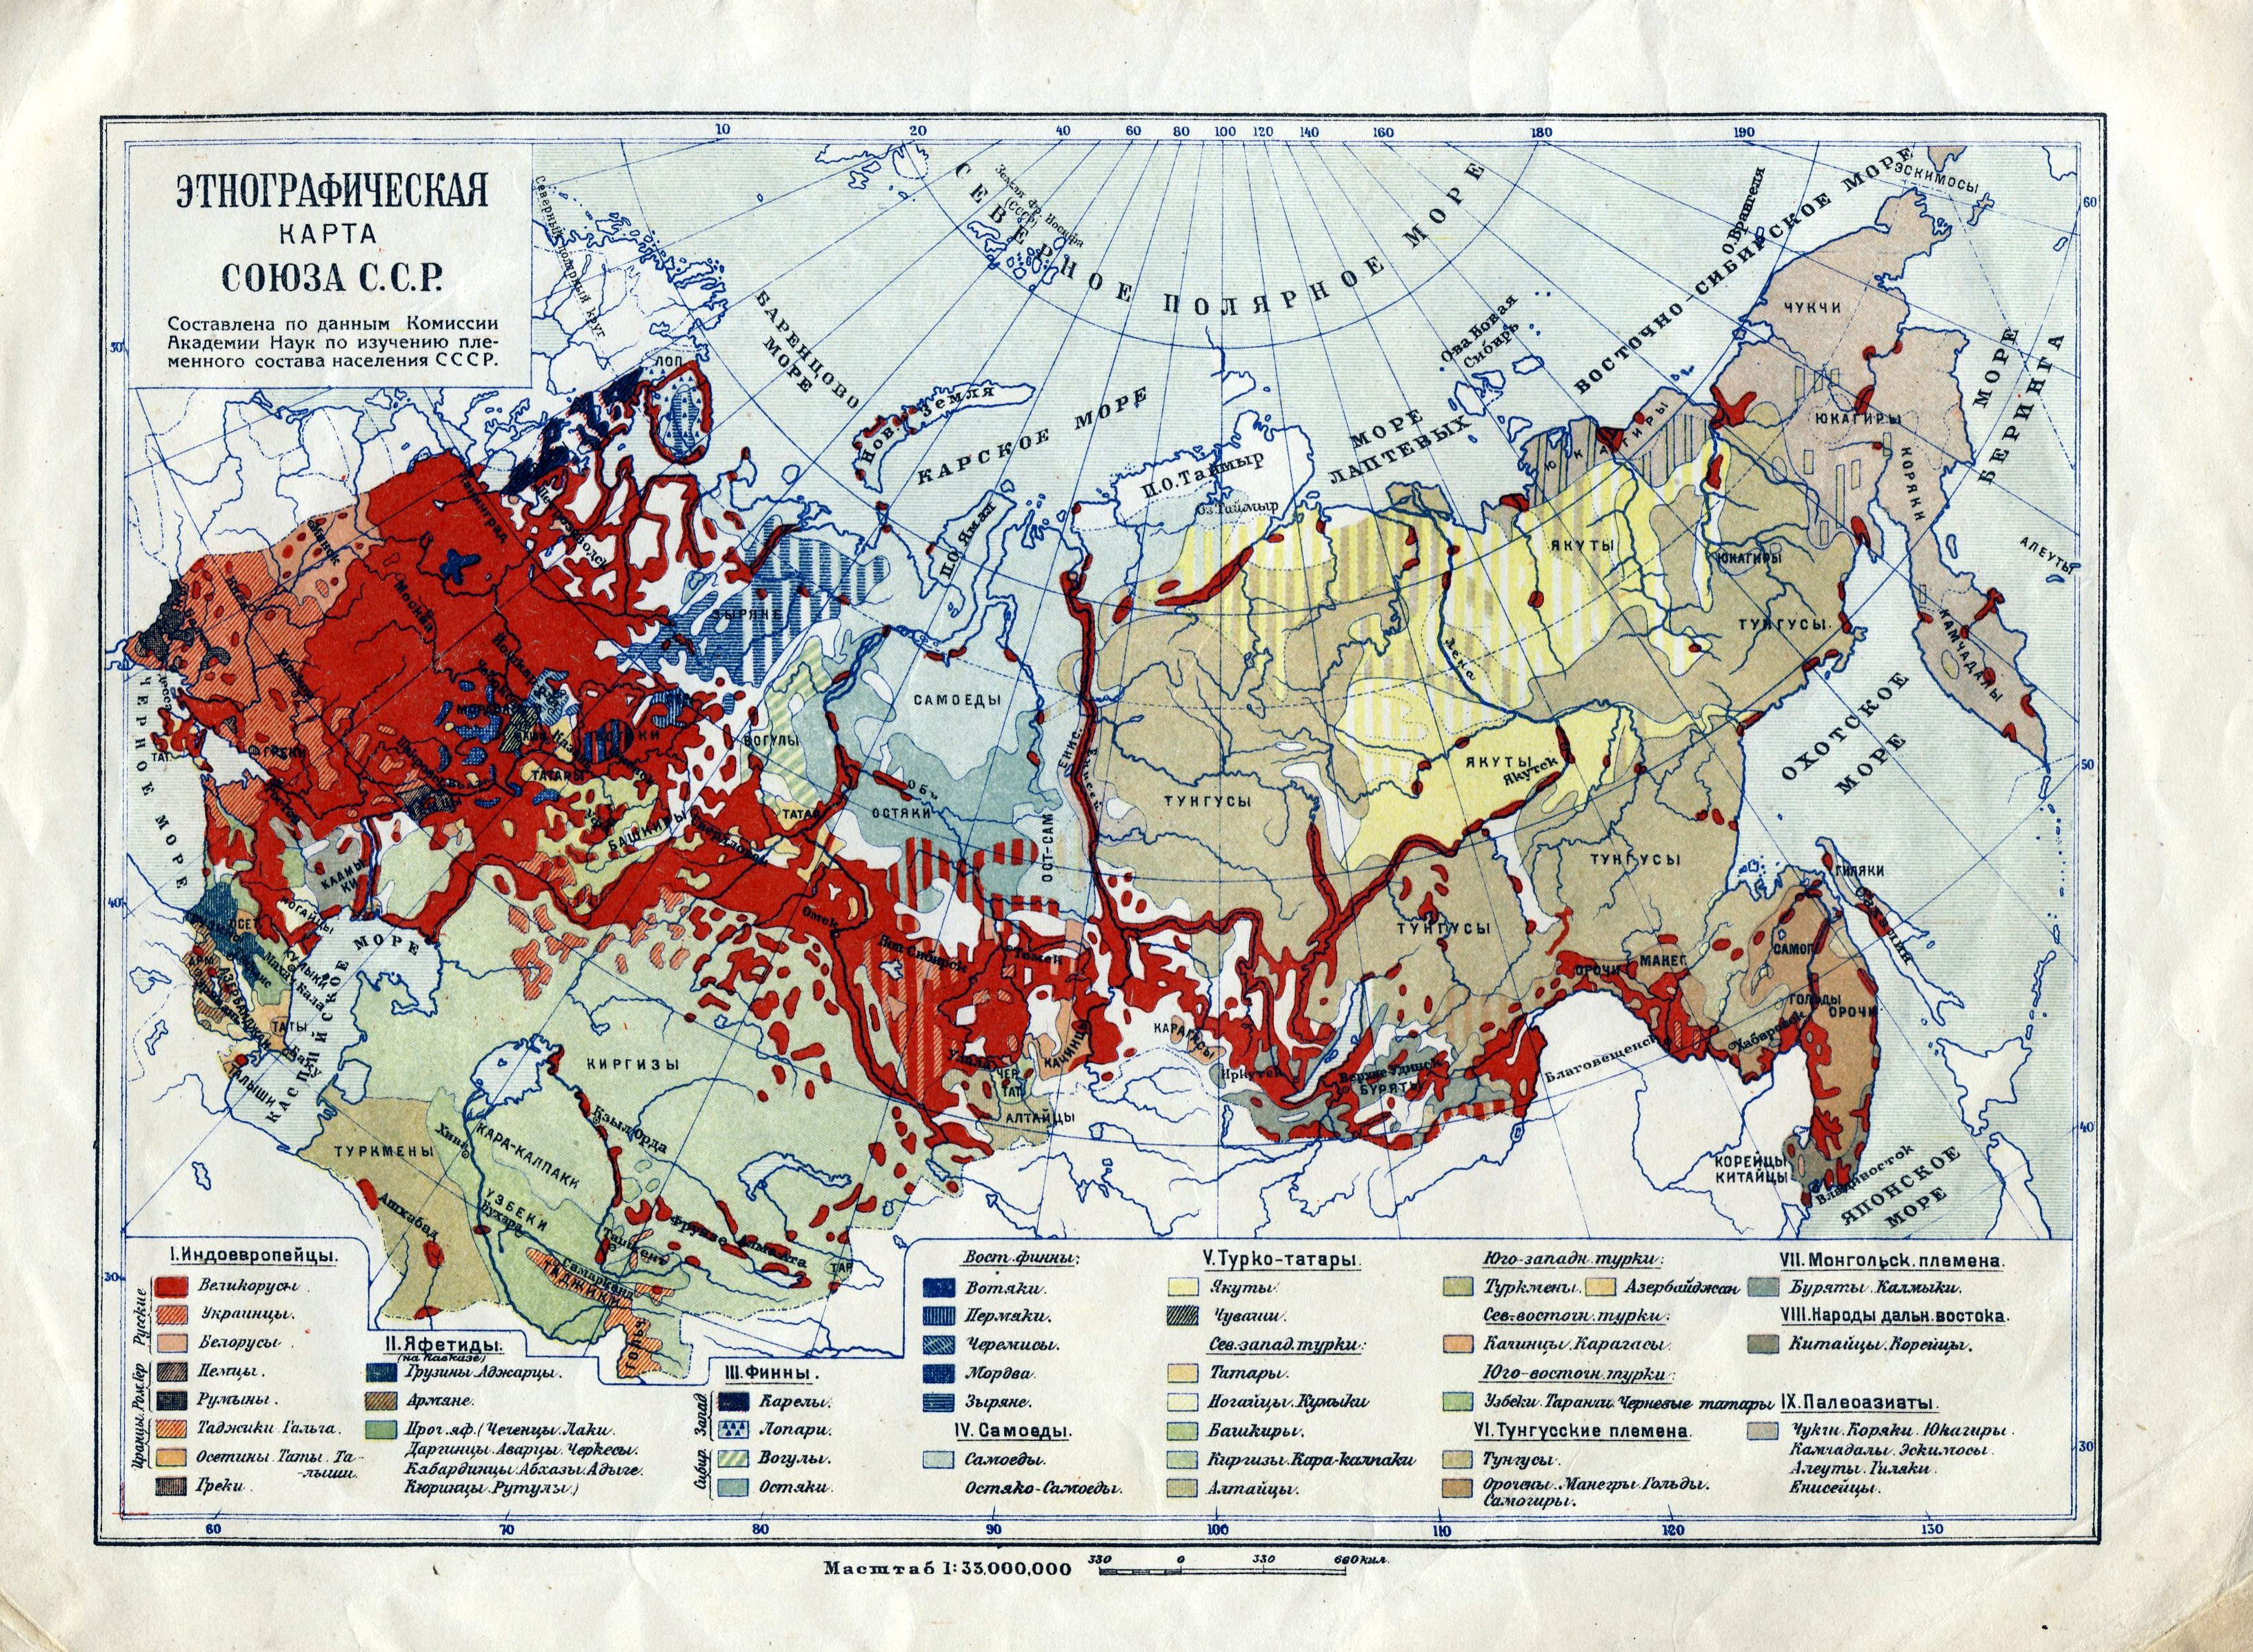 1930. Ethnographic map of the USSR